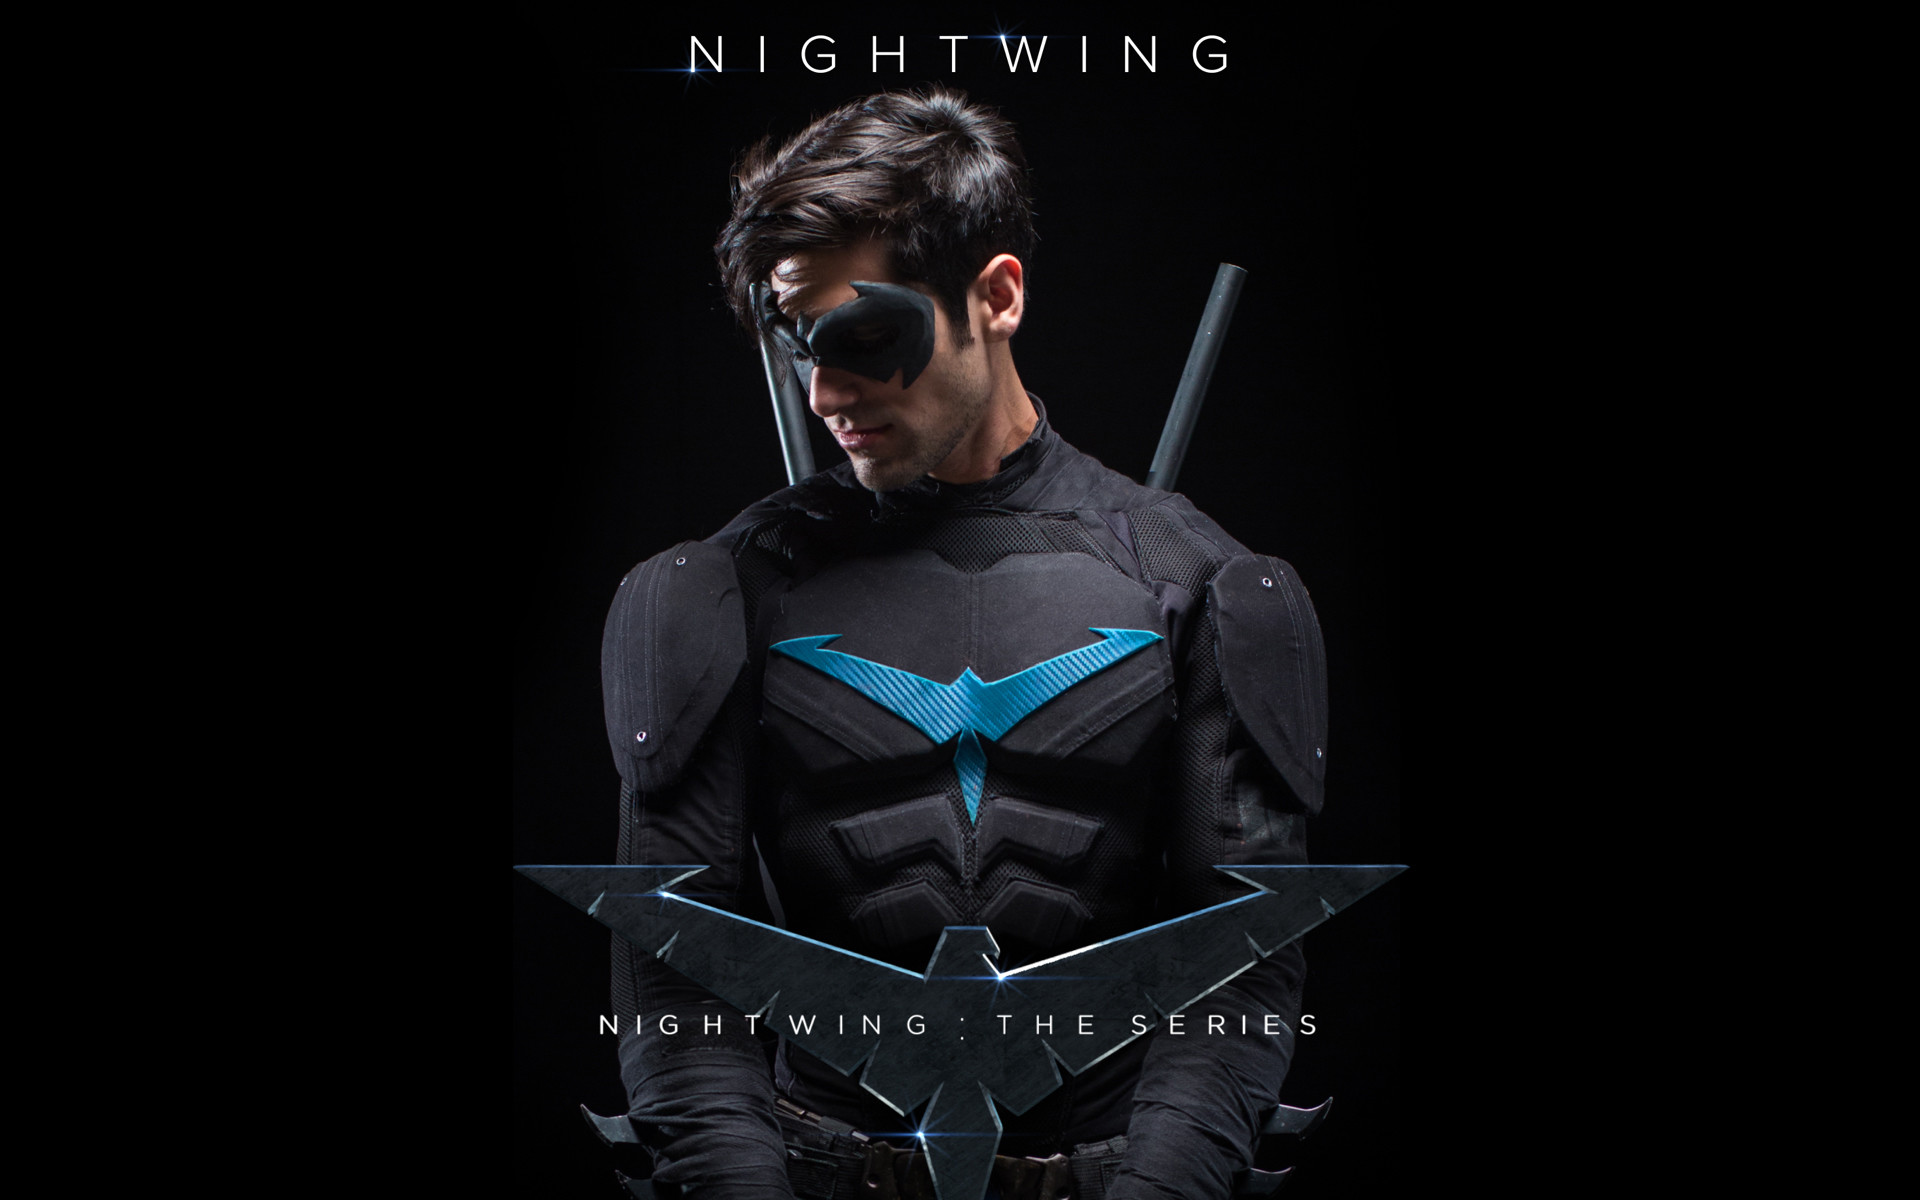 1920x1200 Nightwing HD Backgrounds Download.